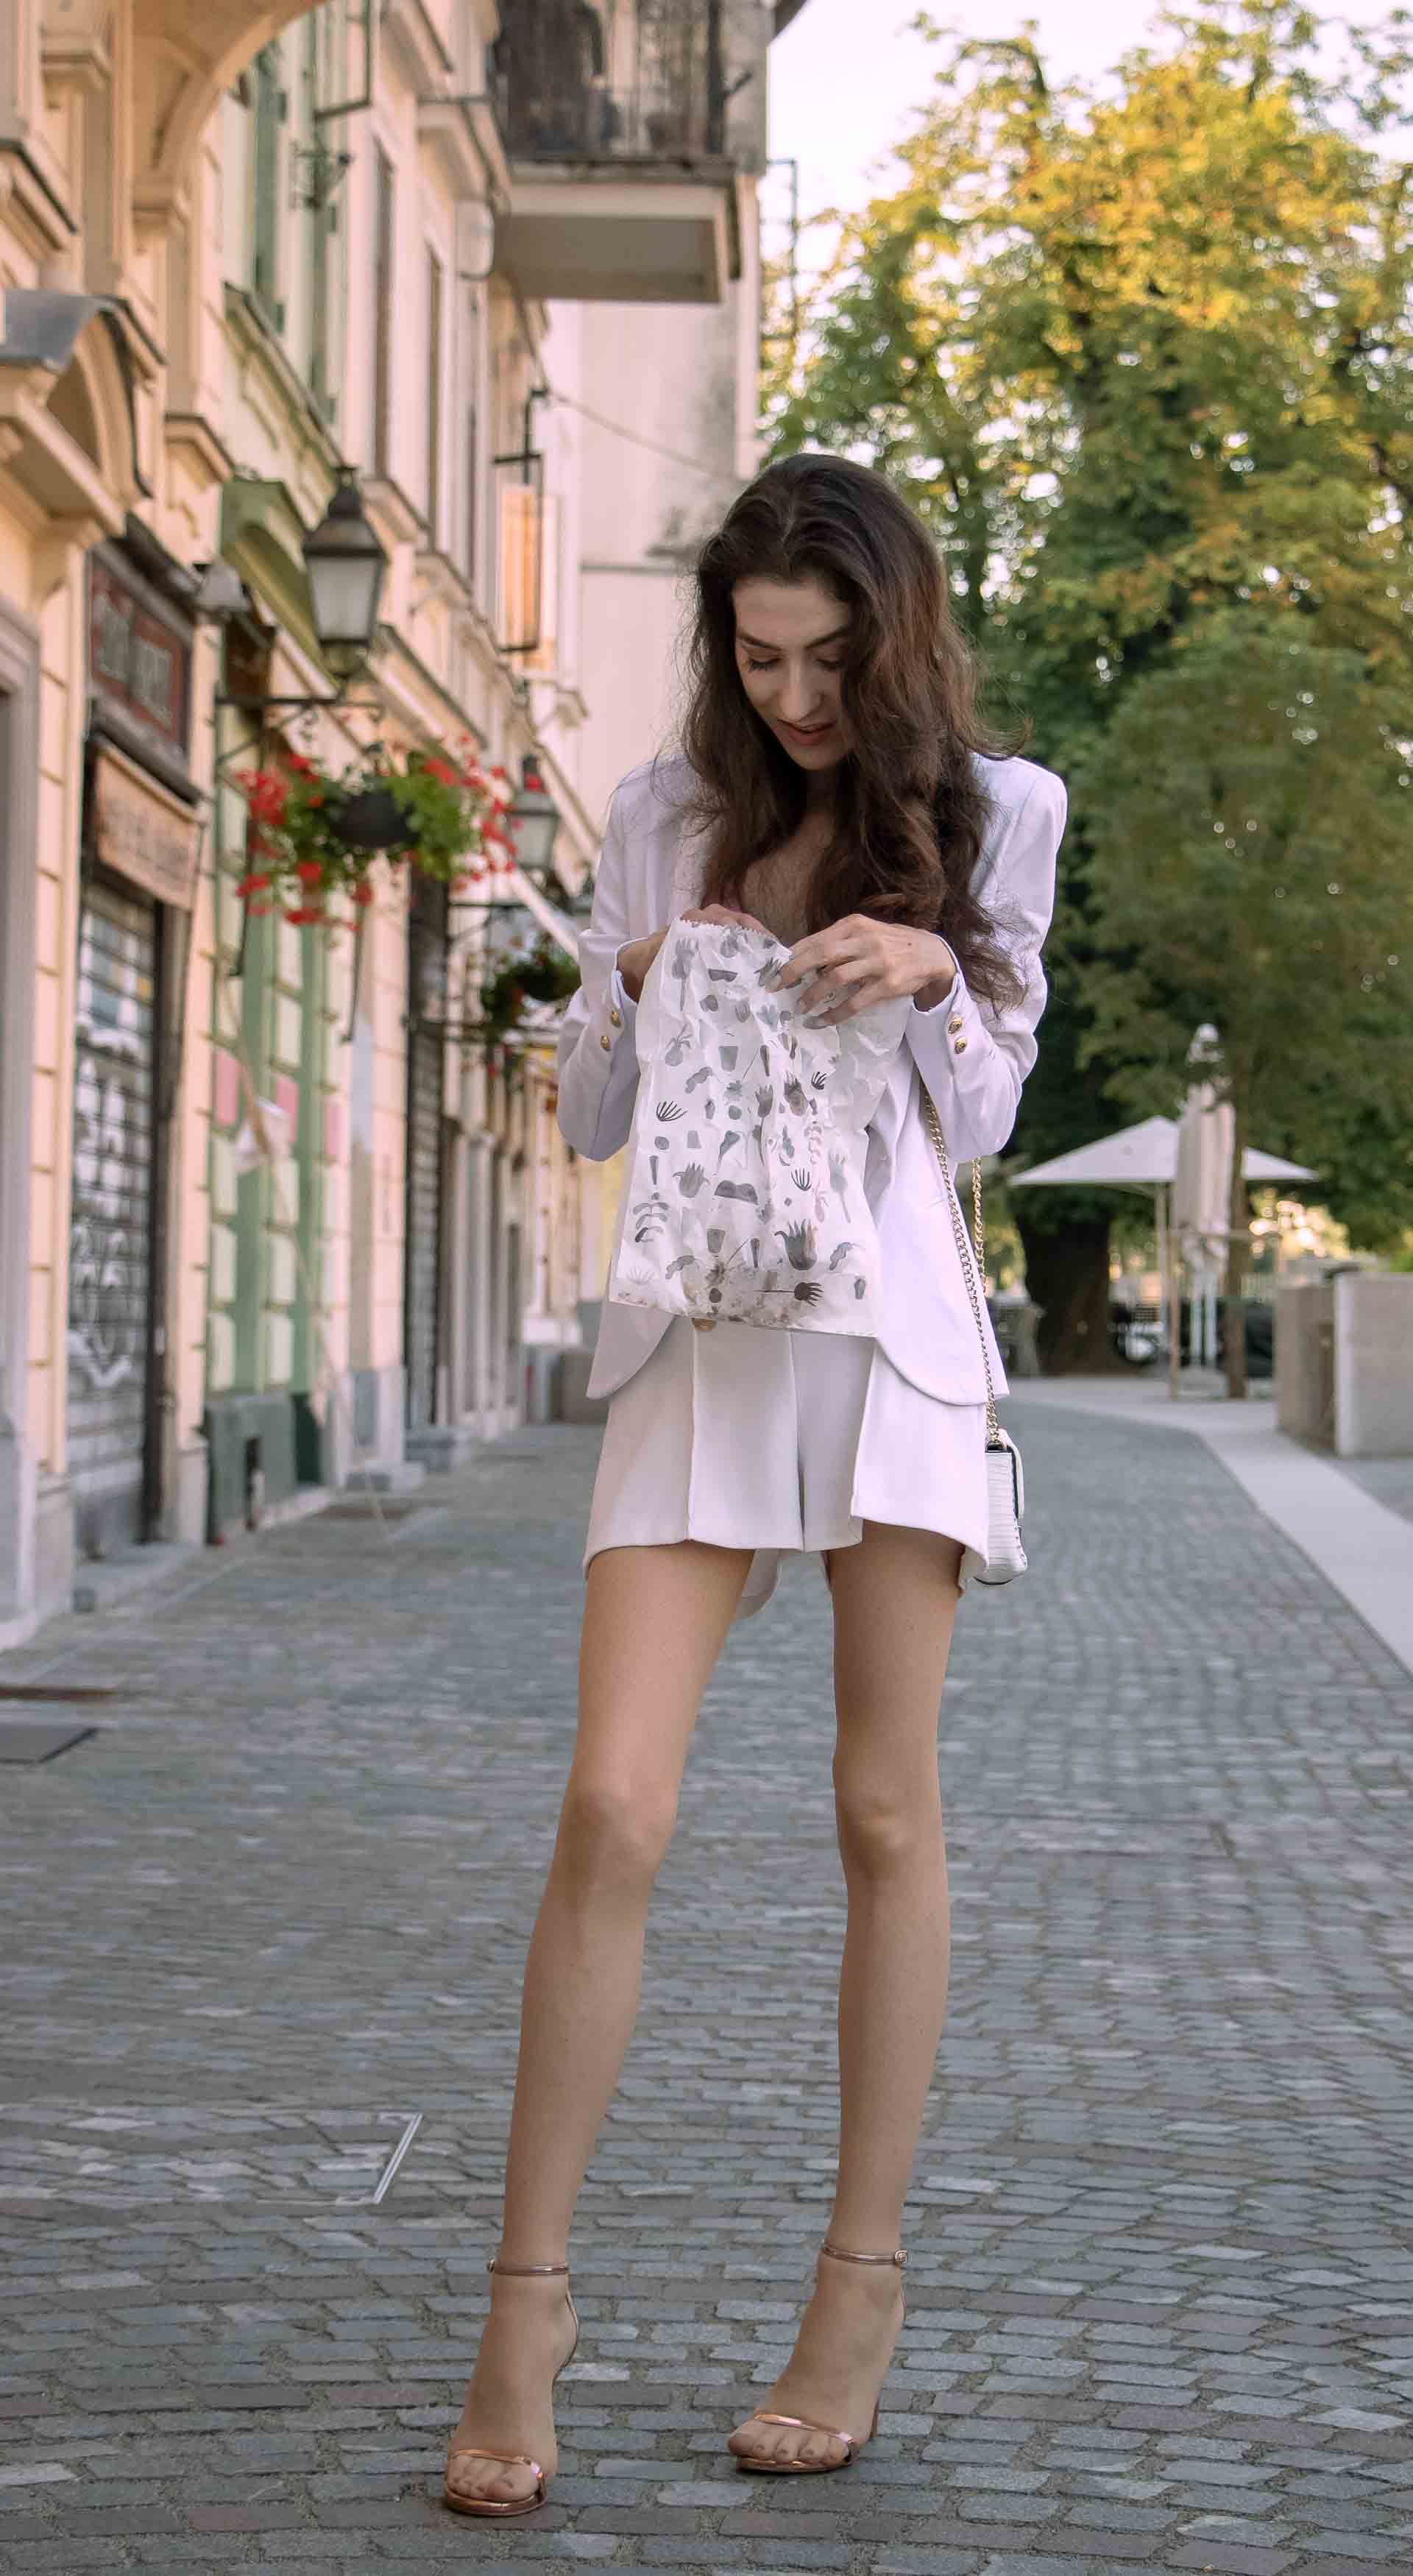 Beautiful Slovenian Fashion Blogger Veronika Lipar of Brunette from Wall dressed in all in white suit, white blazer, white tailored shorts, Stuart Weitzman high shine metallic nudist song sandals, shoulder bag with a paper bag on the street in the morning after nuit blanche